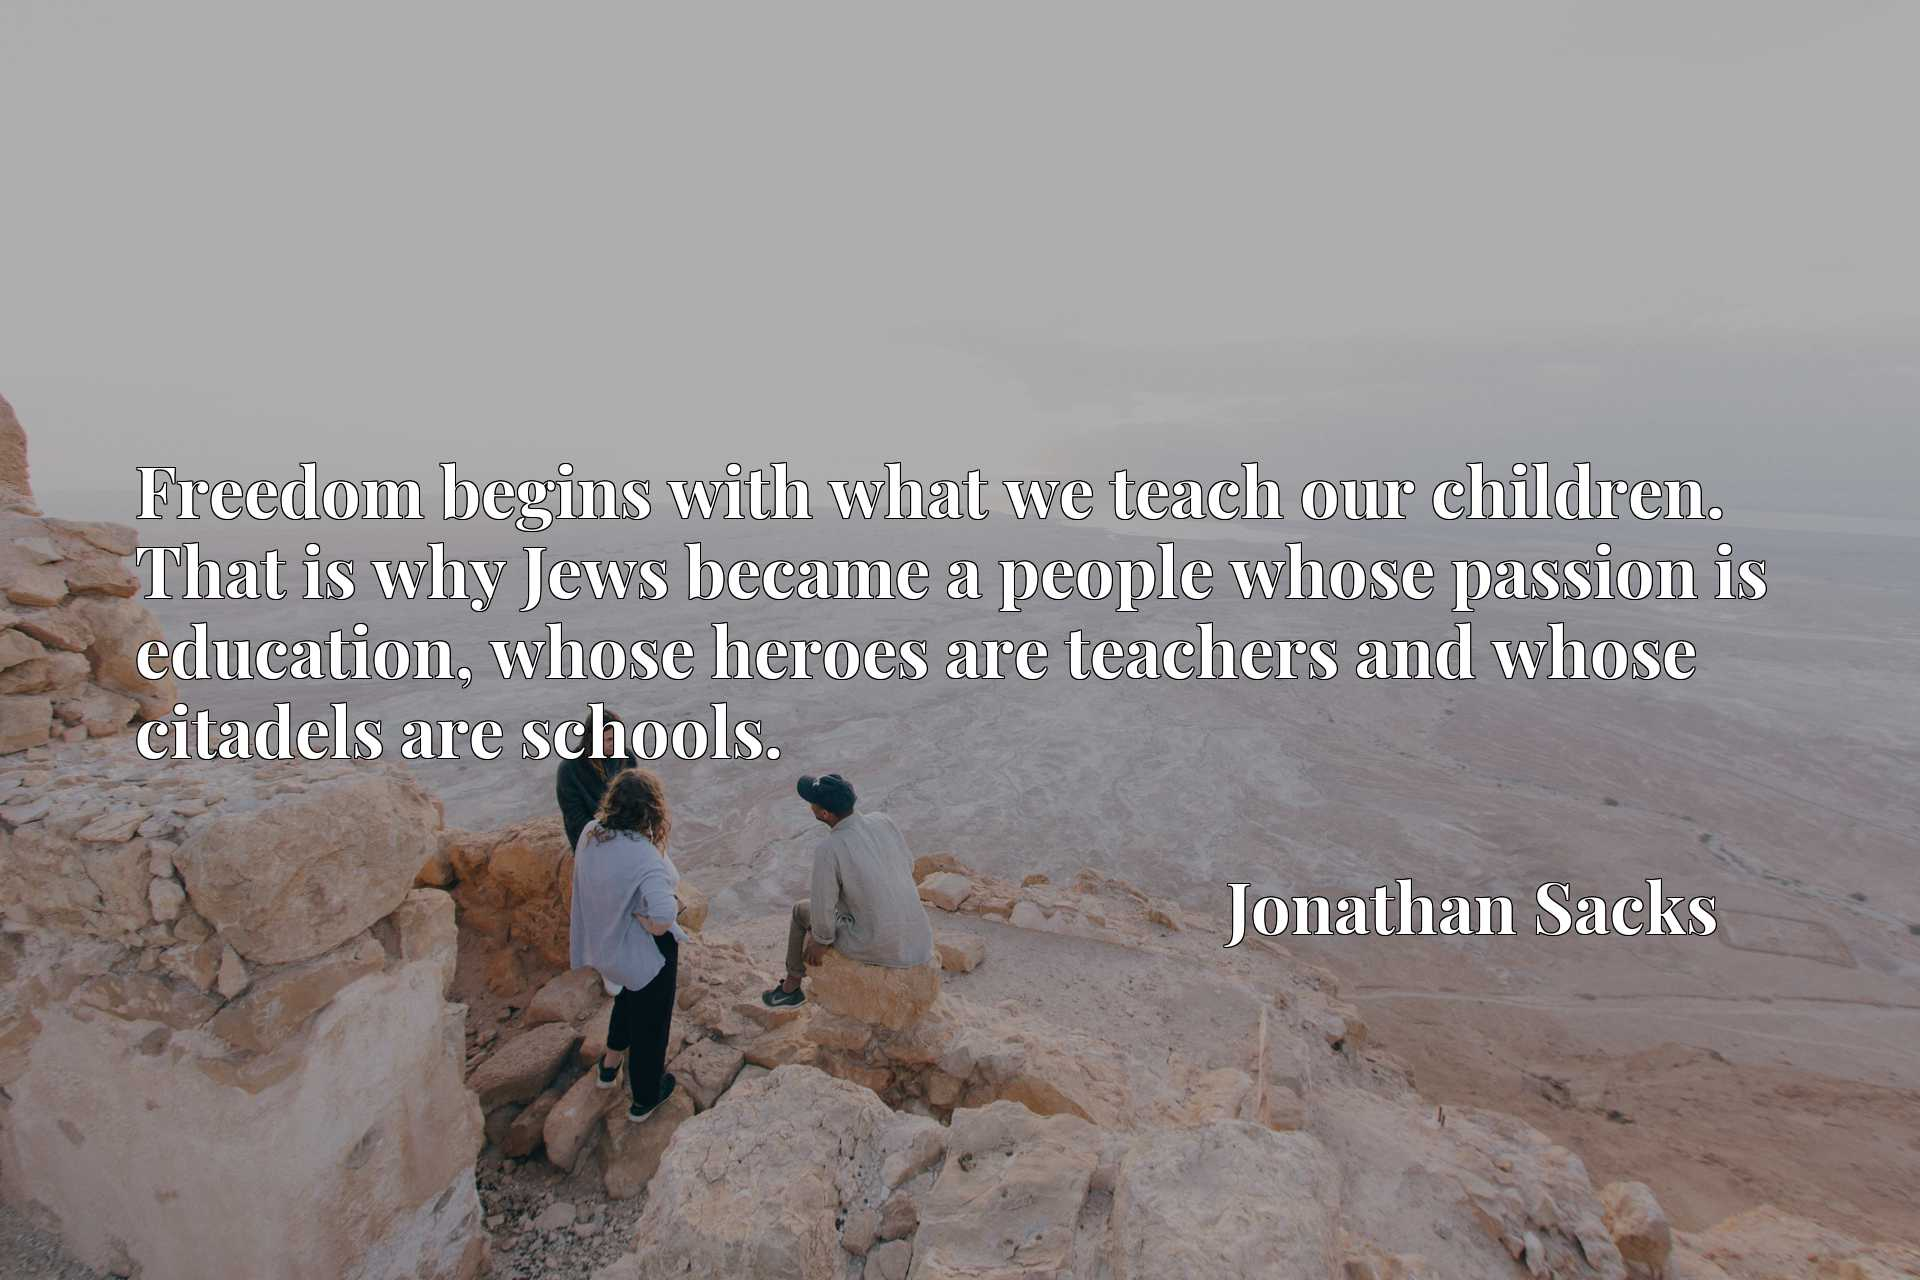 Freedom begins with what we teach our children. That is why Jews became a people whose passion is education, whose heroes are teachers and whose citadels are schools.